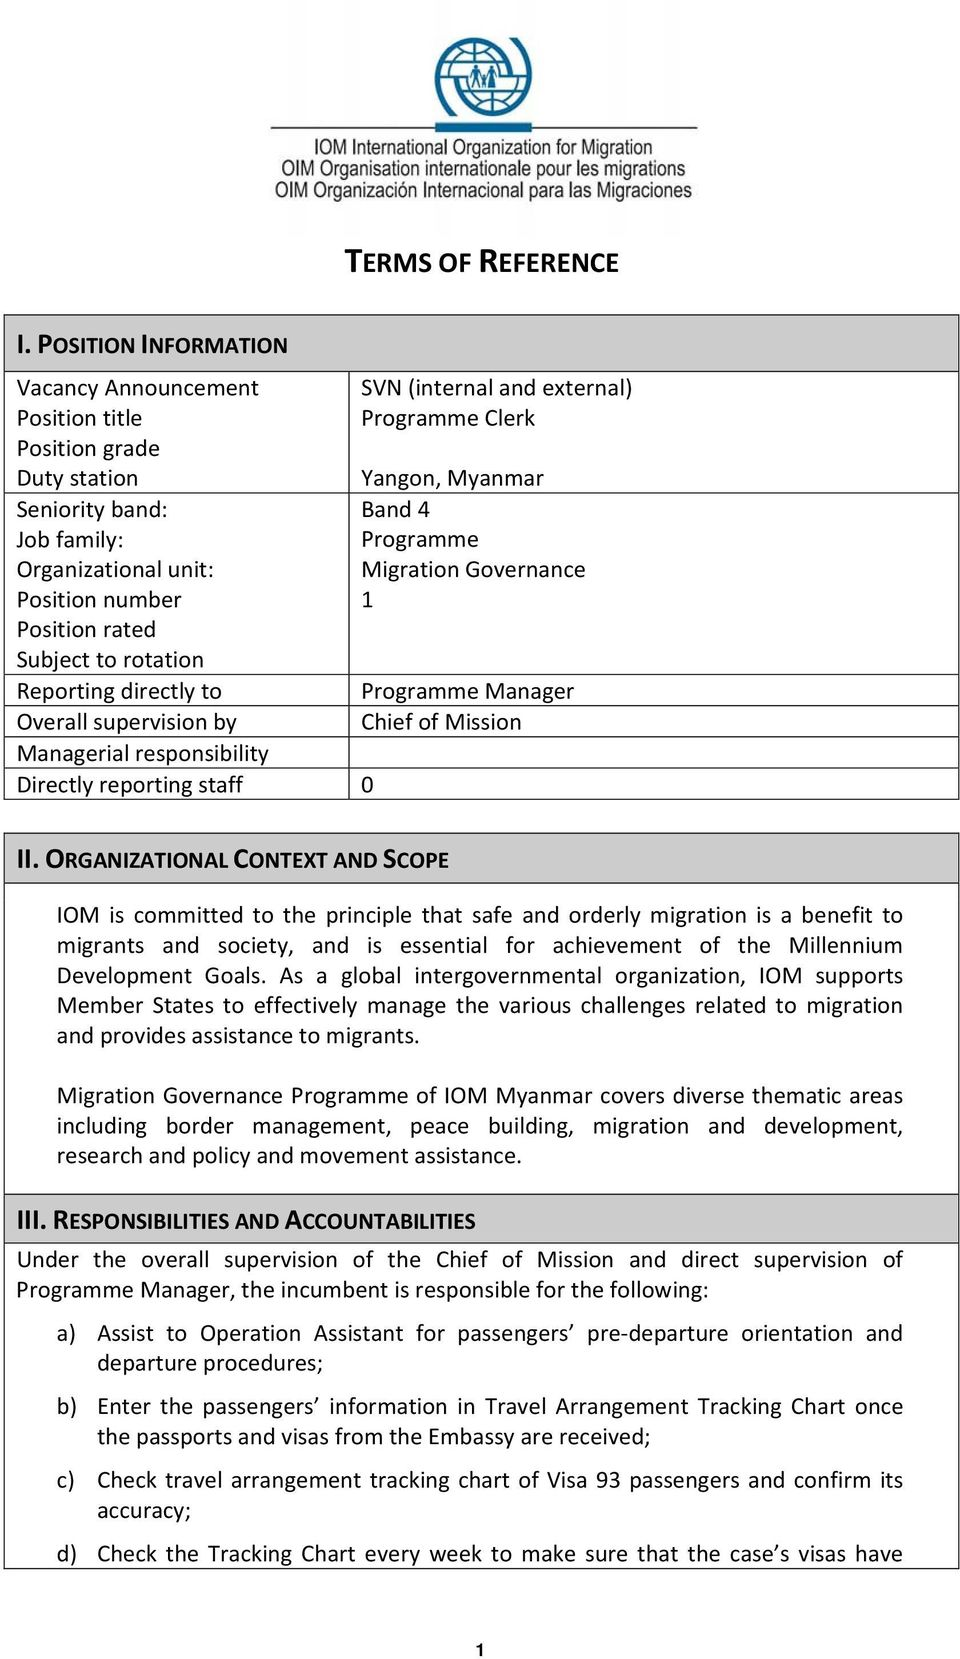 directly to Overall supervision by Managerial responsibility Directly reporting staff 0 SVN (internal and external) Programme Clerk Yangon, Myanmar Band 4 Programme Migration Governance 1 Programme